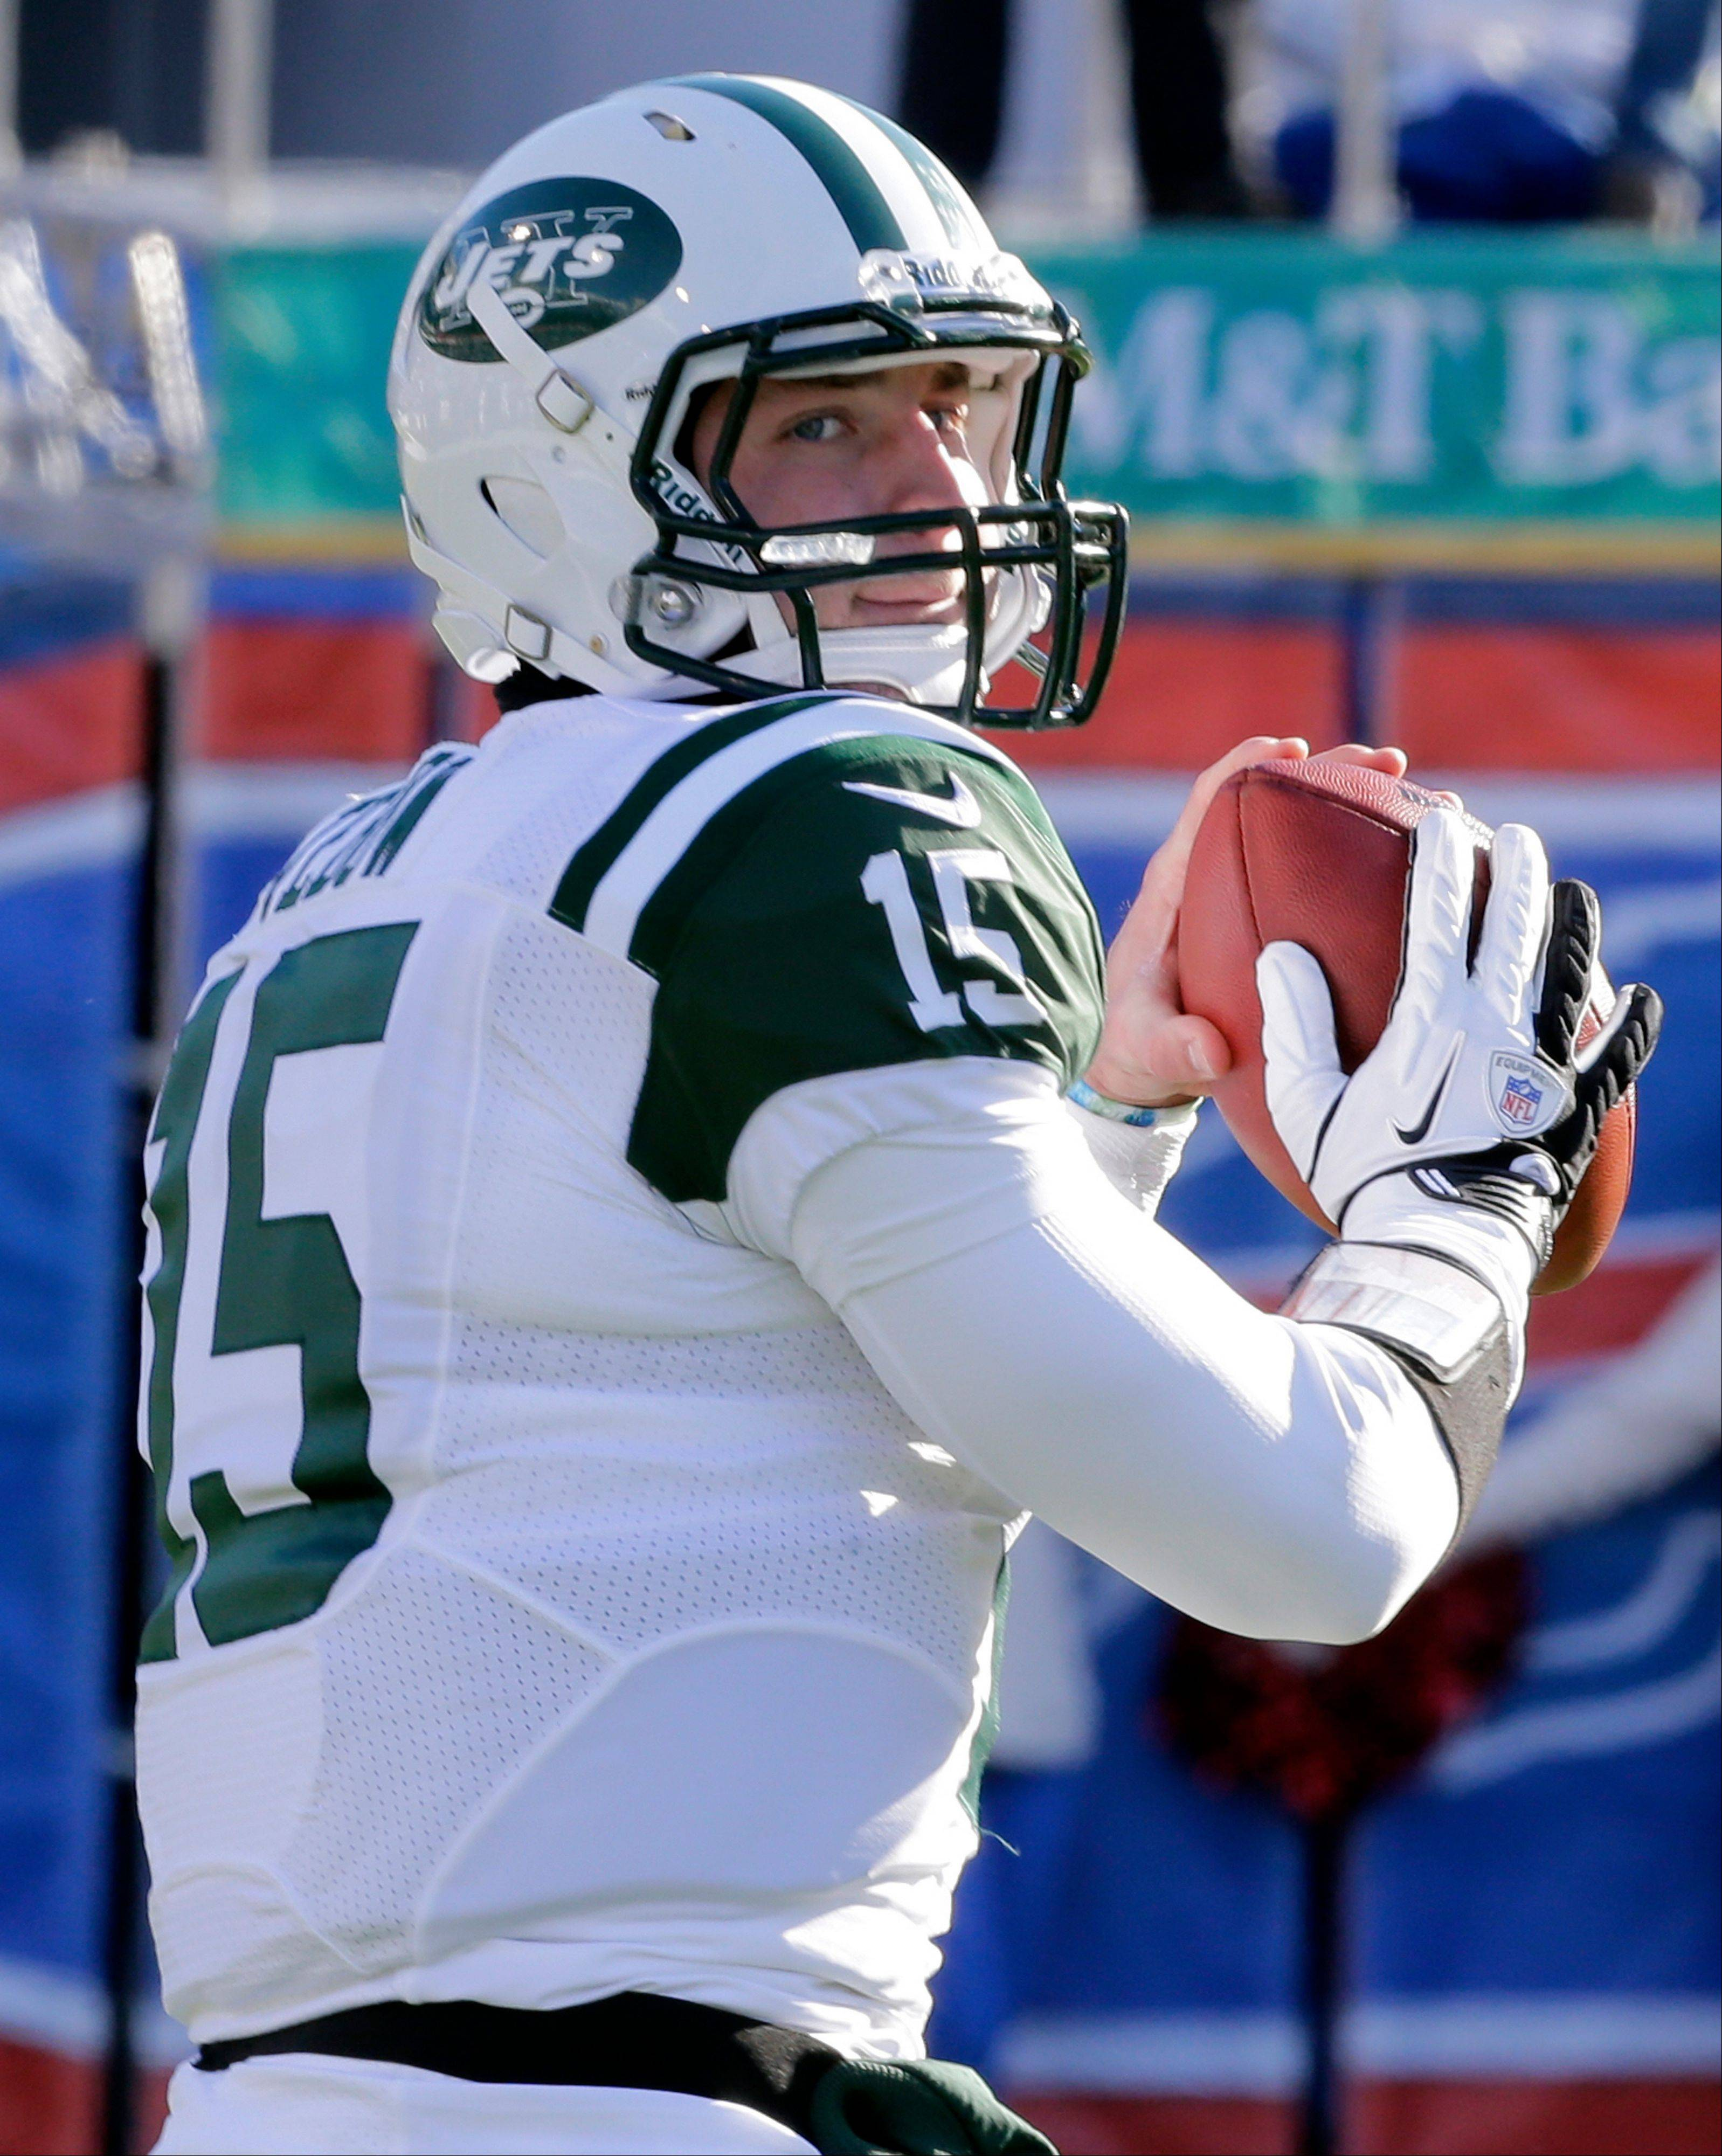 FILE - In a Sunday, Dec. 30, 2012, file photo, New York Jets quarterback Tim Tebow (15) warms up before of an NFL football game against the Buffalo Bills, in Orchard Park, N.Y. Likely done in New York after one frustrating season and Jacksonville already saying no to a happy homecoming, what's next for Tebow, one of the league's most popular and polarizing players? A backup role on another NFL team? A position change? The Canadian Football League? Well, even Tebow isn't sure. (AP Photo/Gary Wiepert, File)